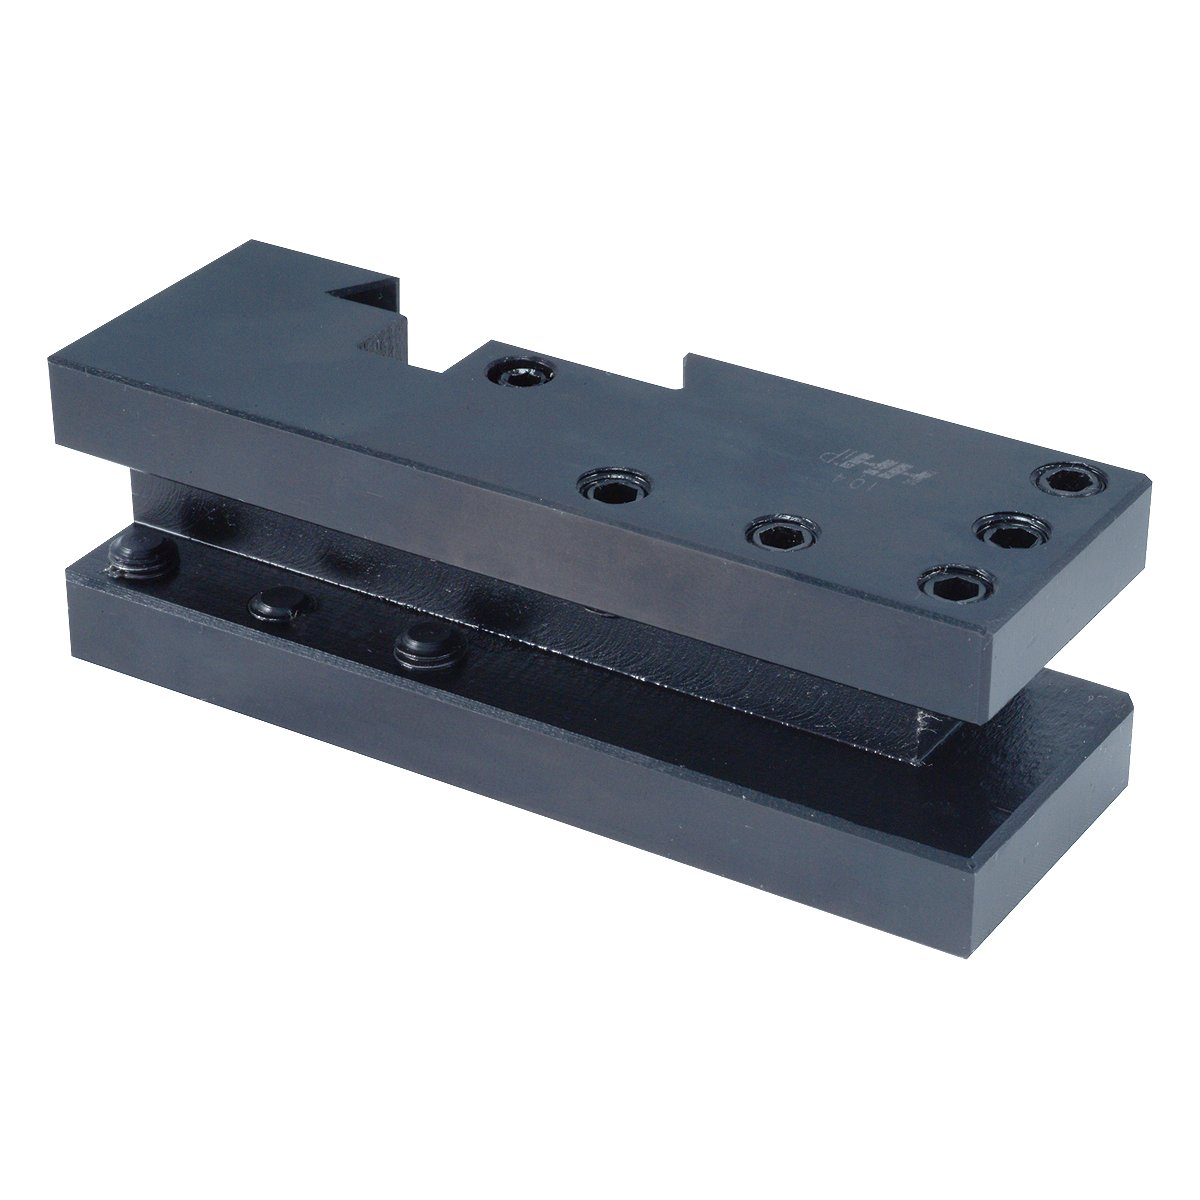 HHIP 3900-5449 KDK 202-1 Threading and Facing Bar Holder